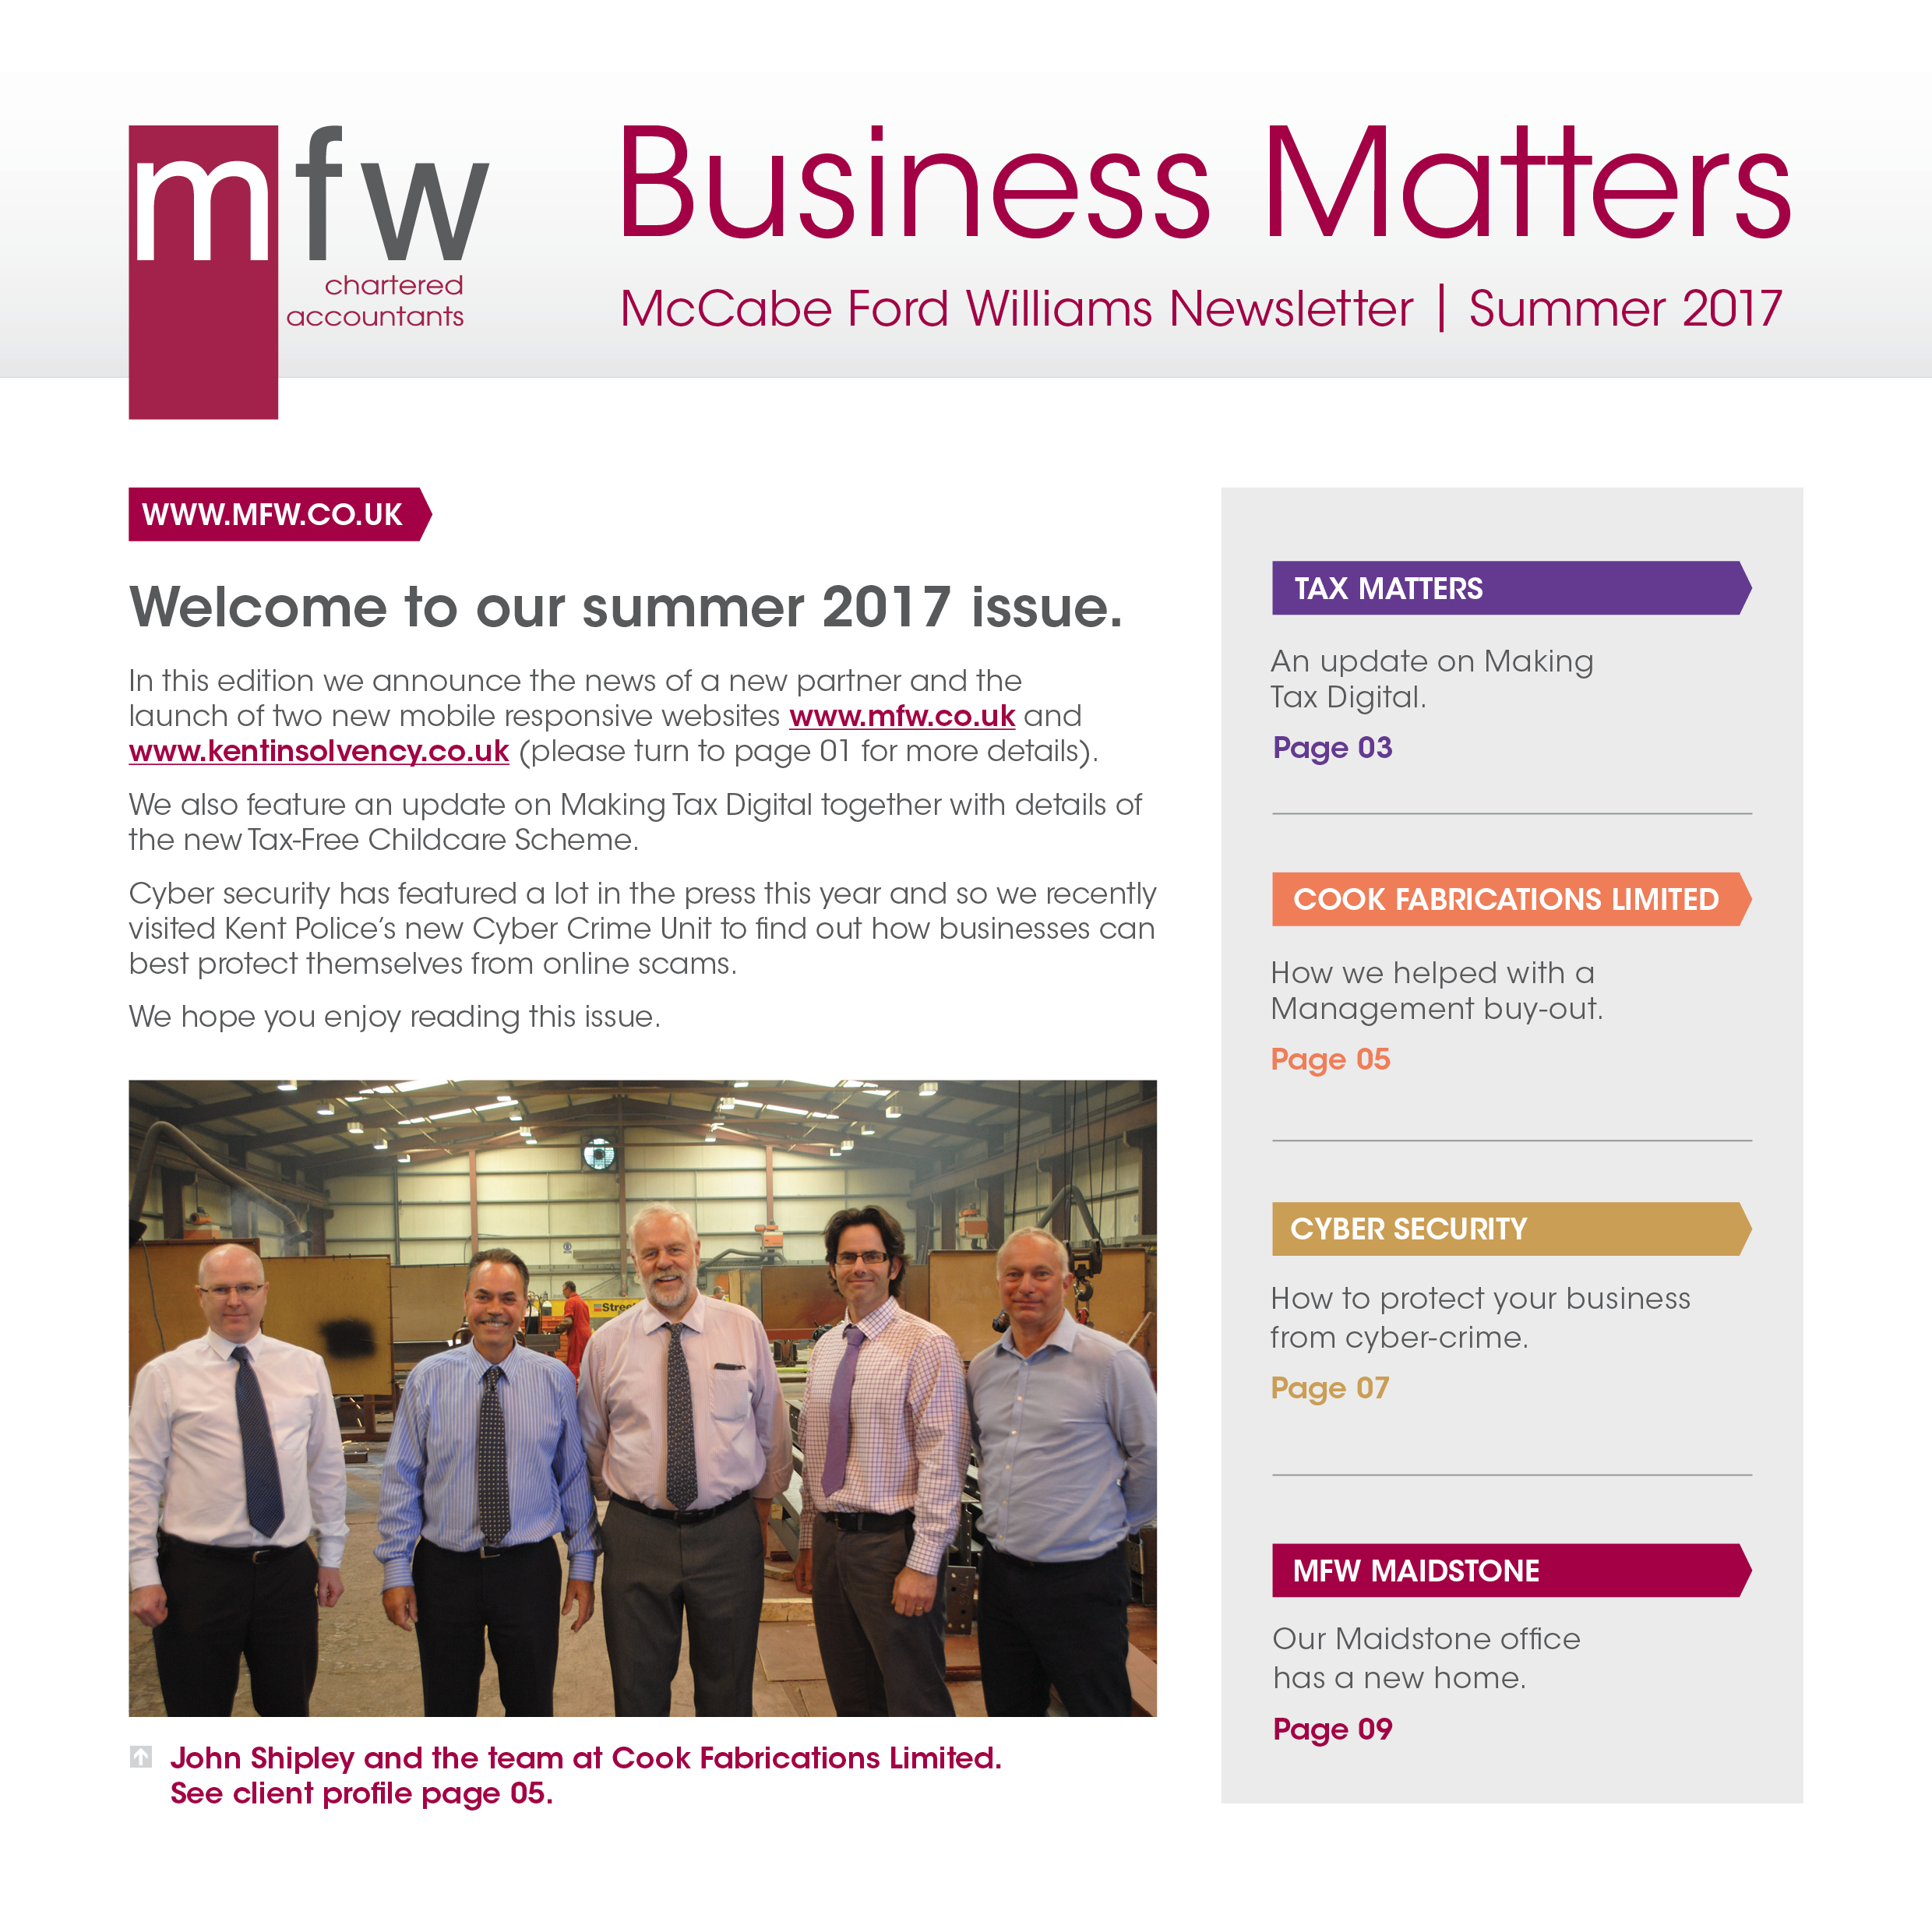 Business Matters summer 2017 front page